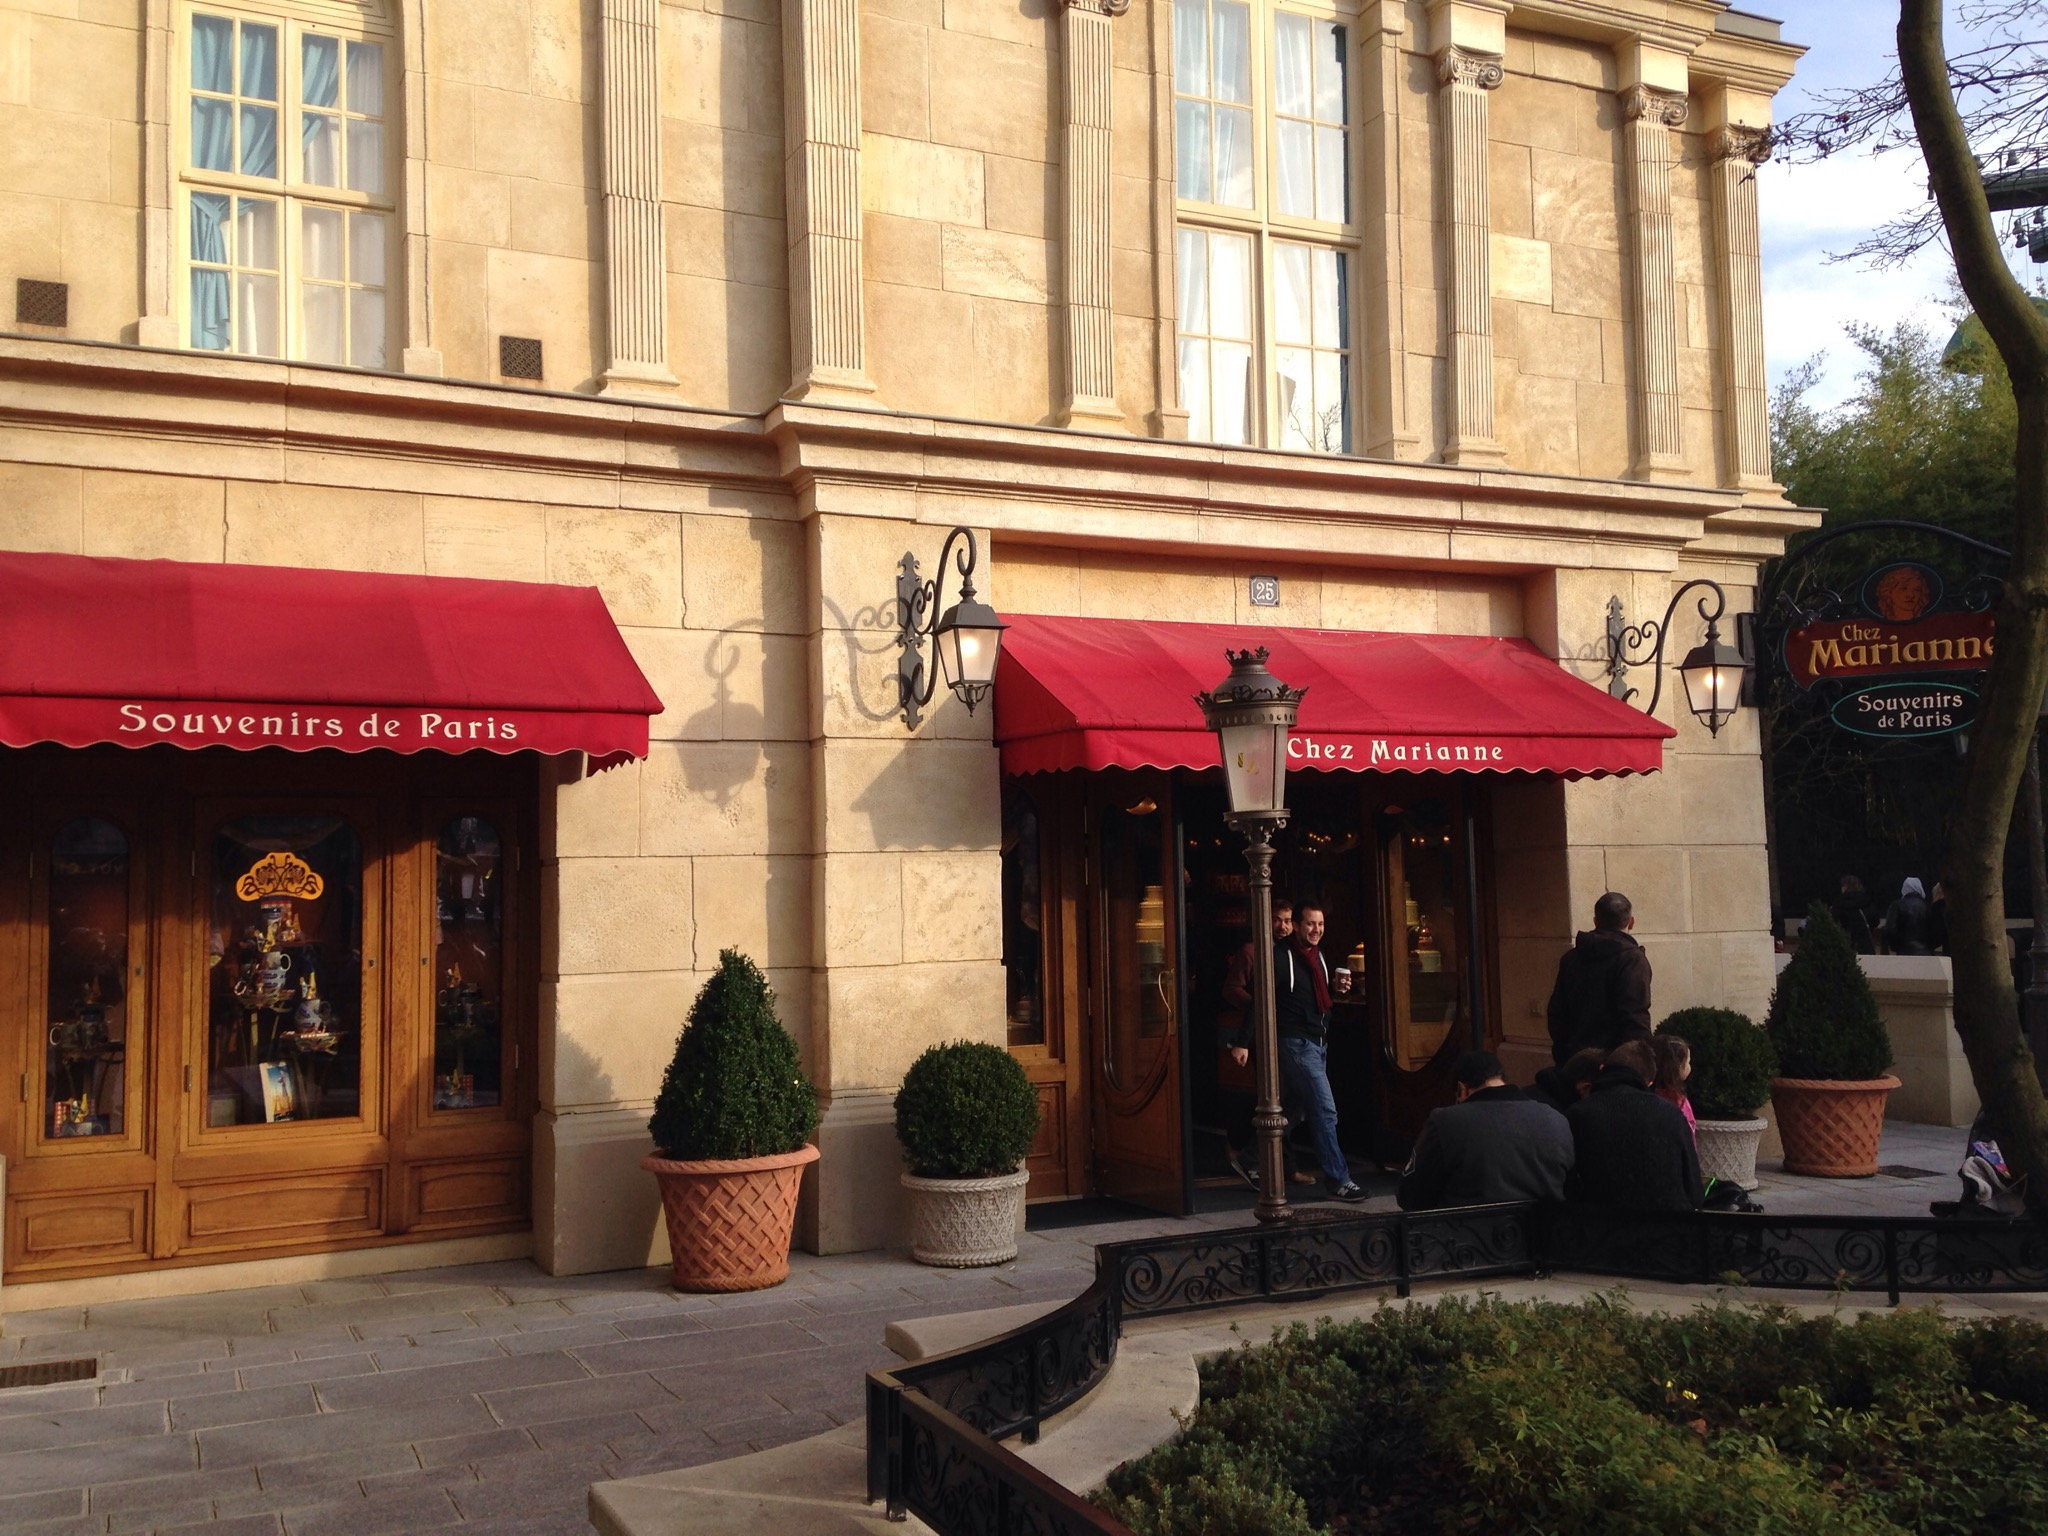 A Closer Look at Chez Marianne